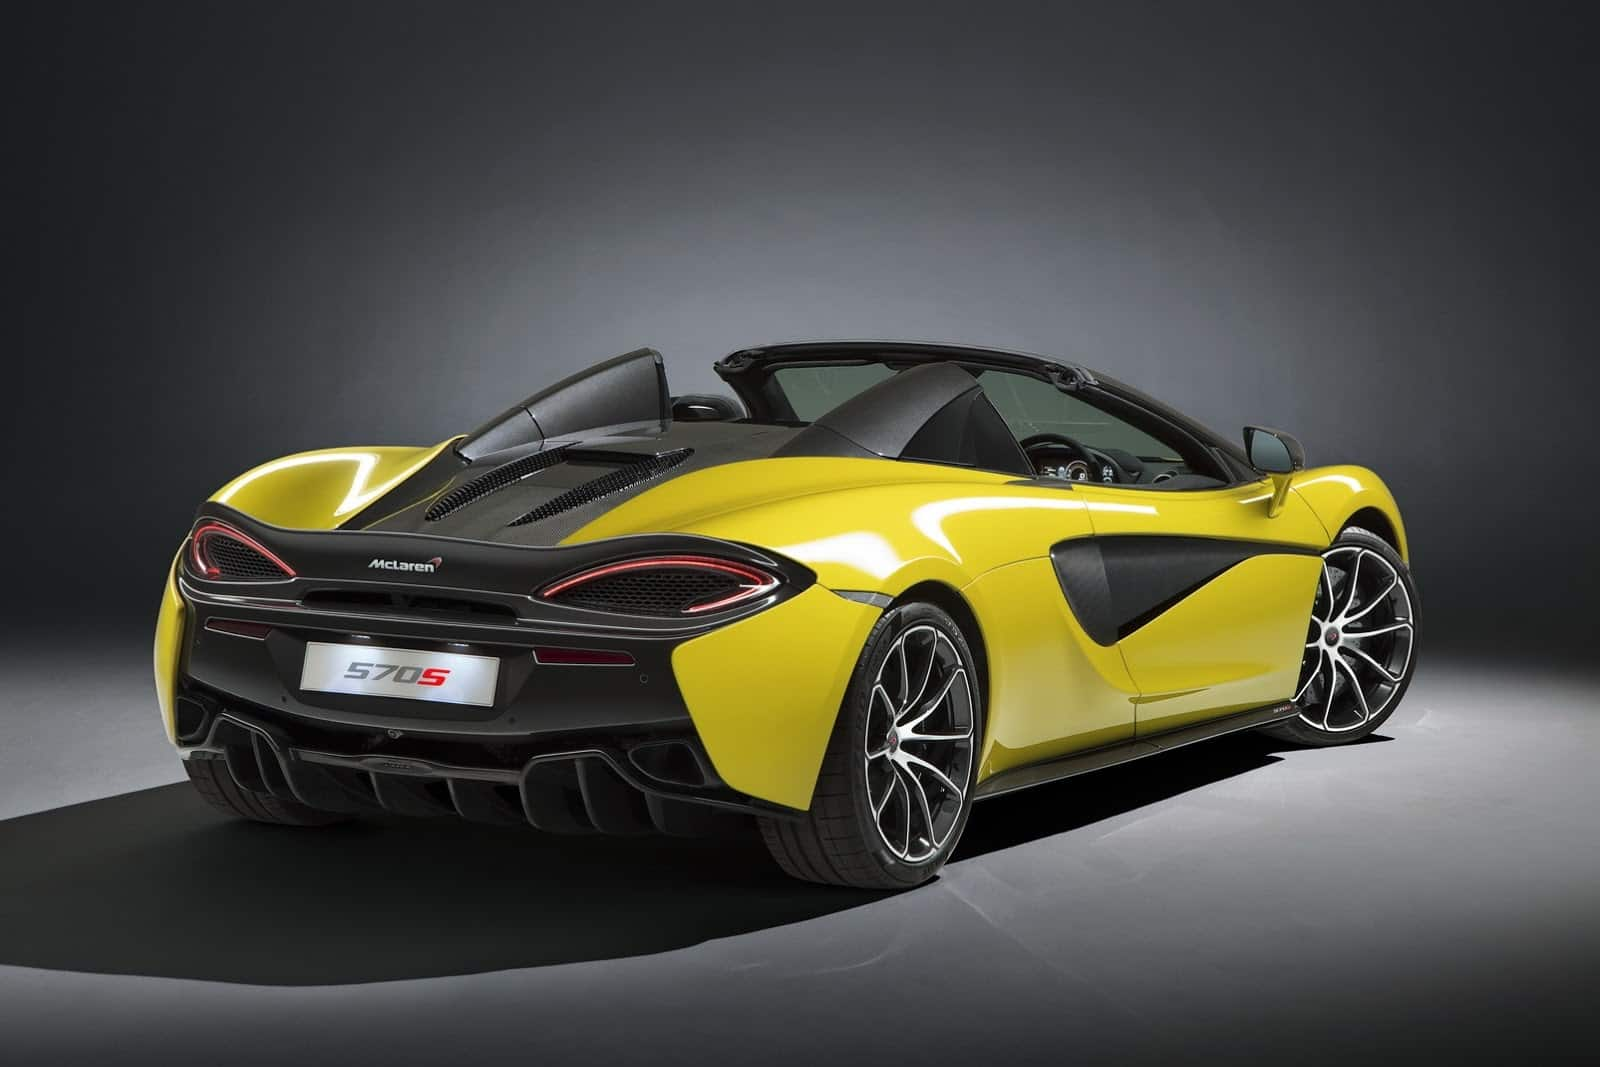 Venom Gt 2017 >> The McLaren 570S Spider is Perfect for this Summer